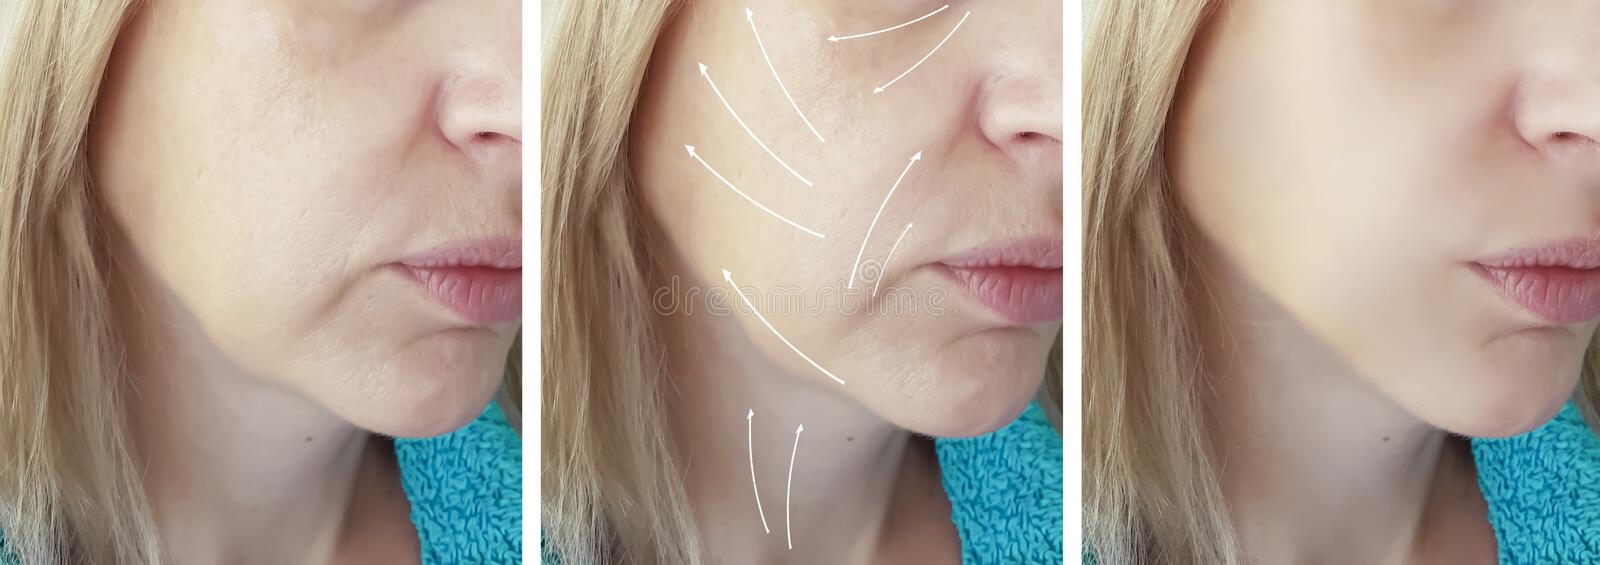 Woman face wrinkles removal cosmetology patient medicine before and after difference treatment procedures, arrow. Woman face wrinkles removal before and after stock images